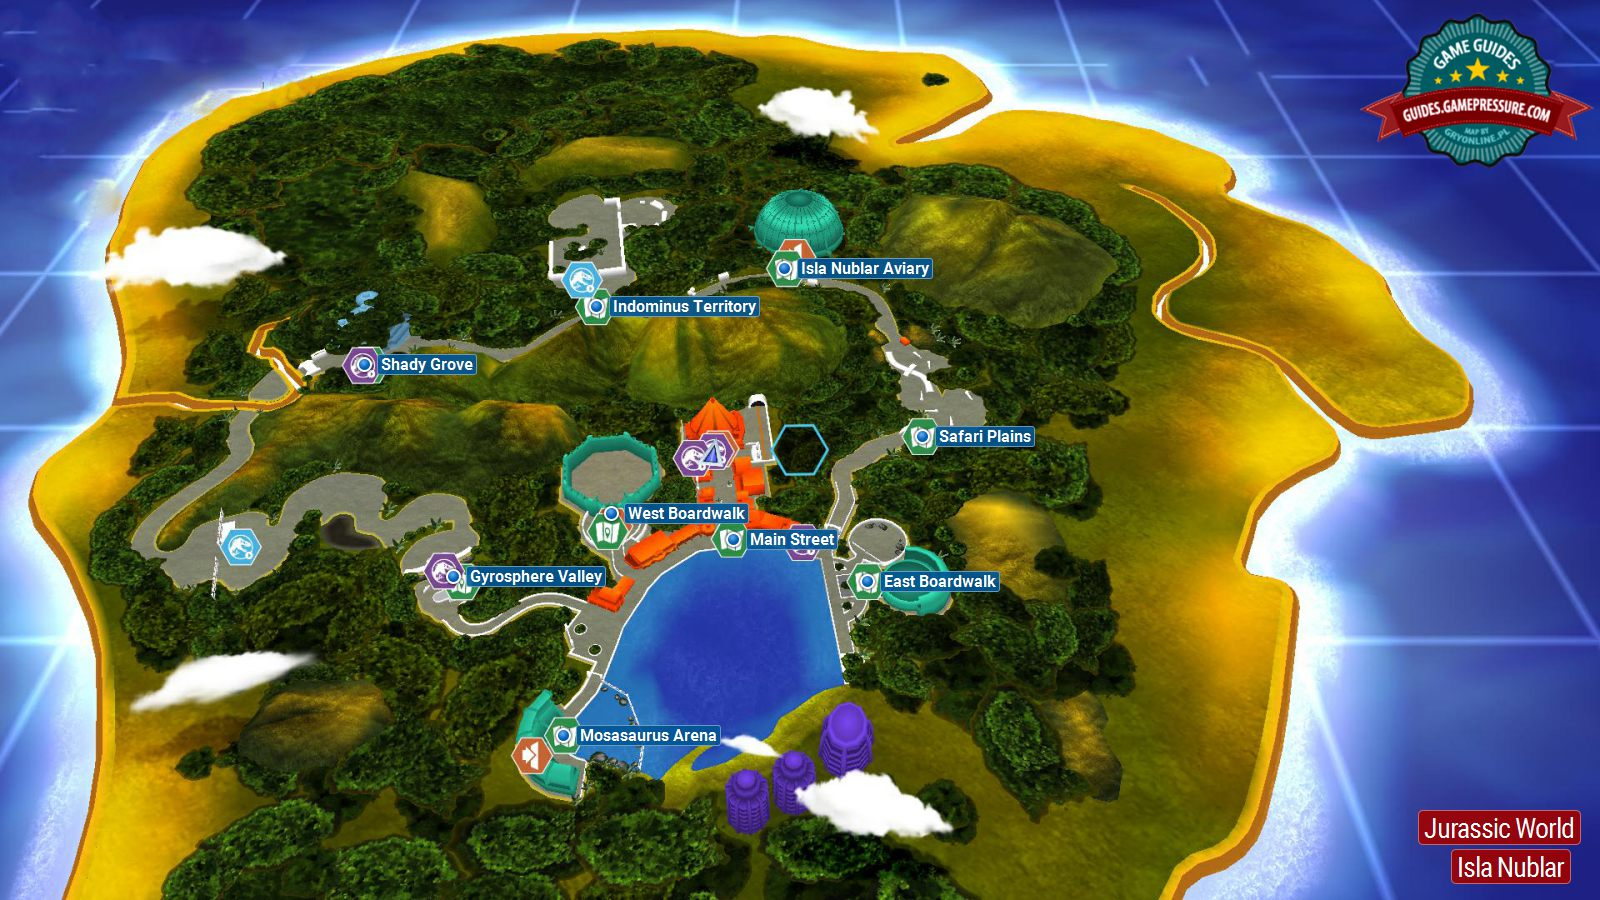 Introduction and map jurassic world secrets in free roam lego lego jurassic world jurassic world gumiabroncs Images